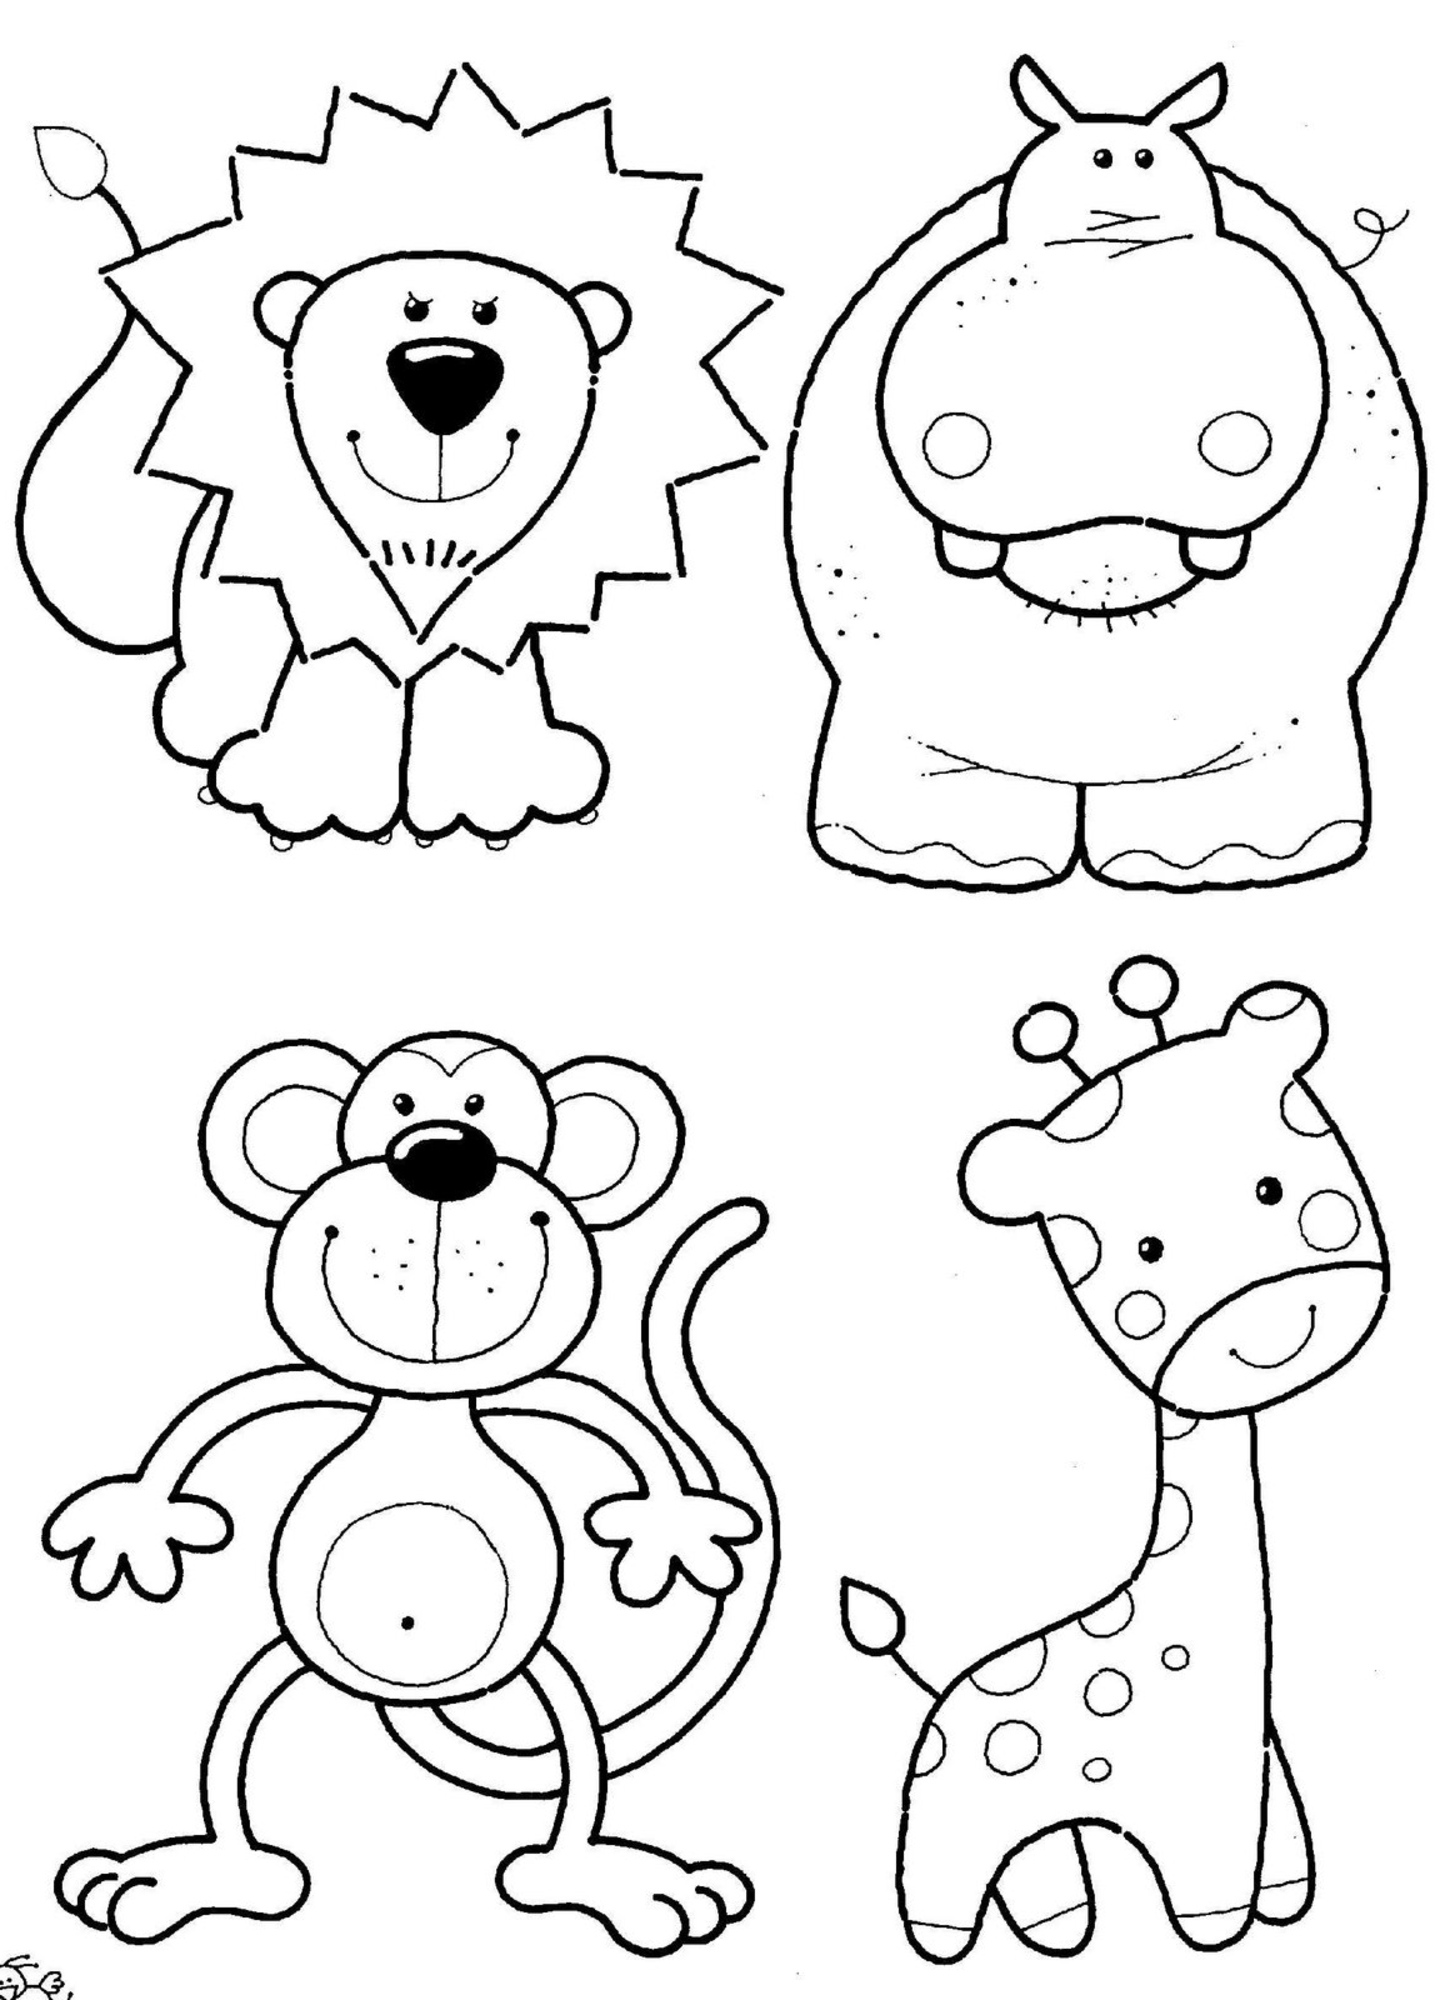 coloring pages veterinarian - photo#29